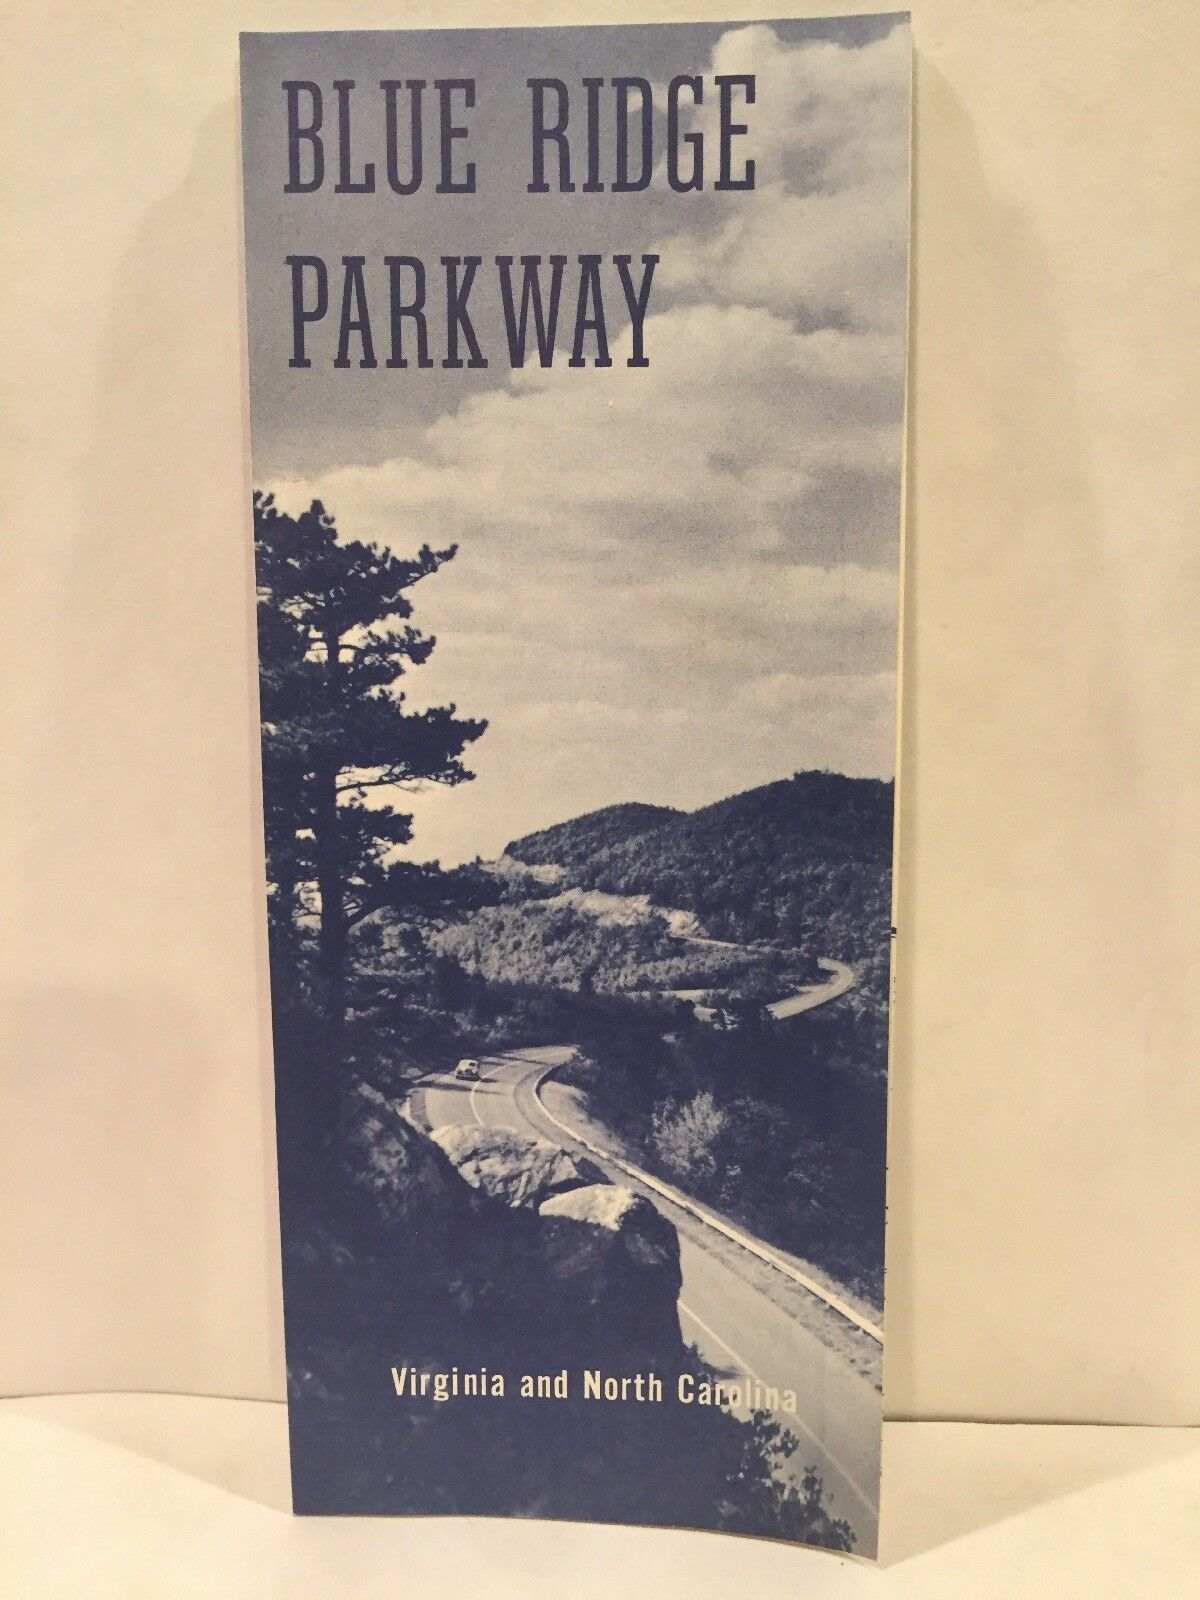 1962 BLUE RIDGE PARKWAY Virginia and North Carolina Travel Brochure and  Road Map